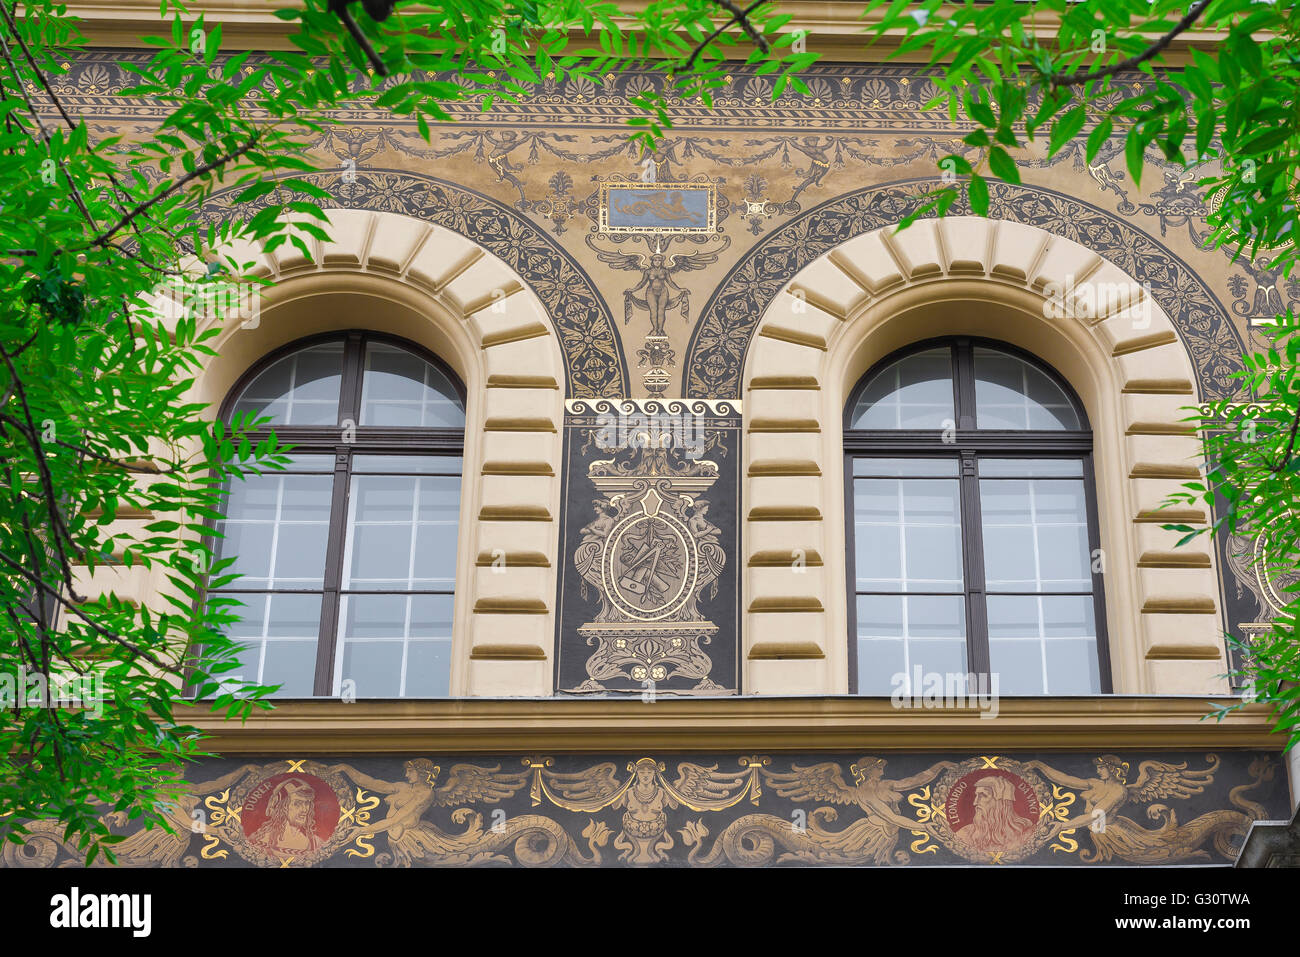 Budapest andrassy ut, the richly decorated exterior of the Art Institute building in Andrassy ut in the the Terezvaros - Stock Image